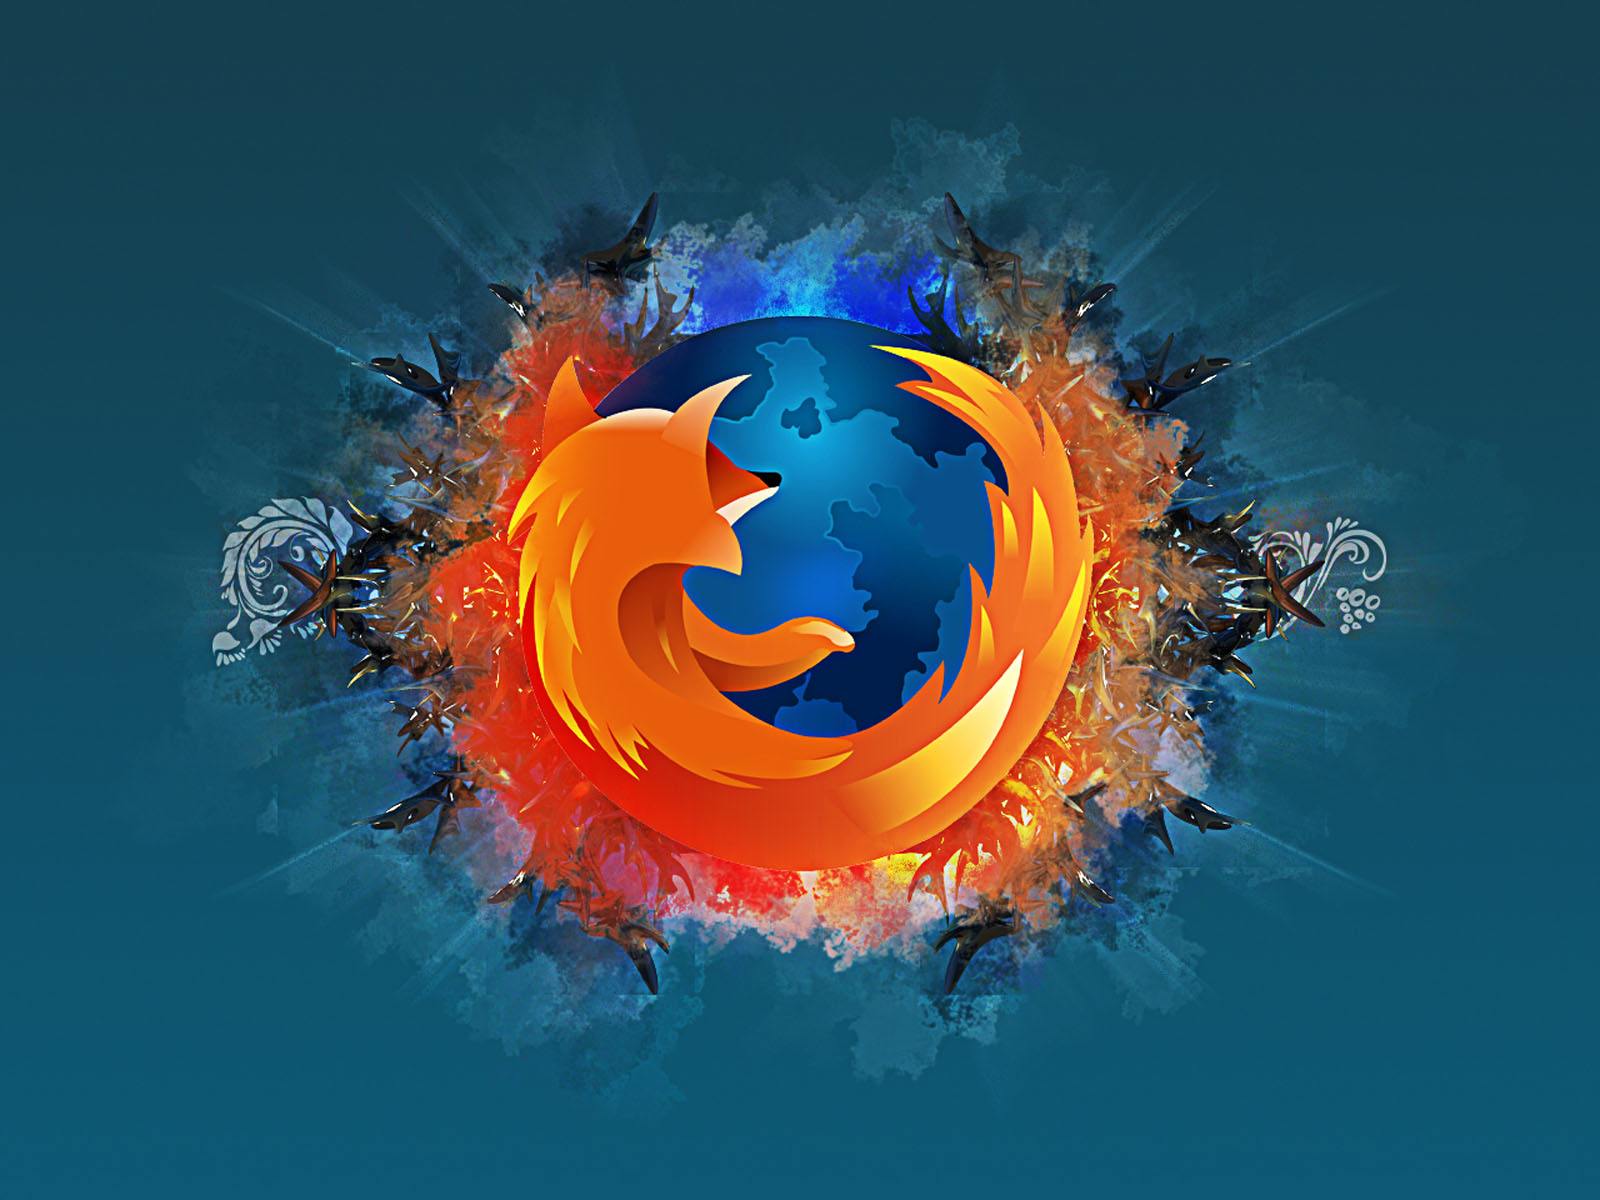 Wallpapers: Firefox Wallpapers